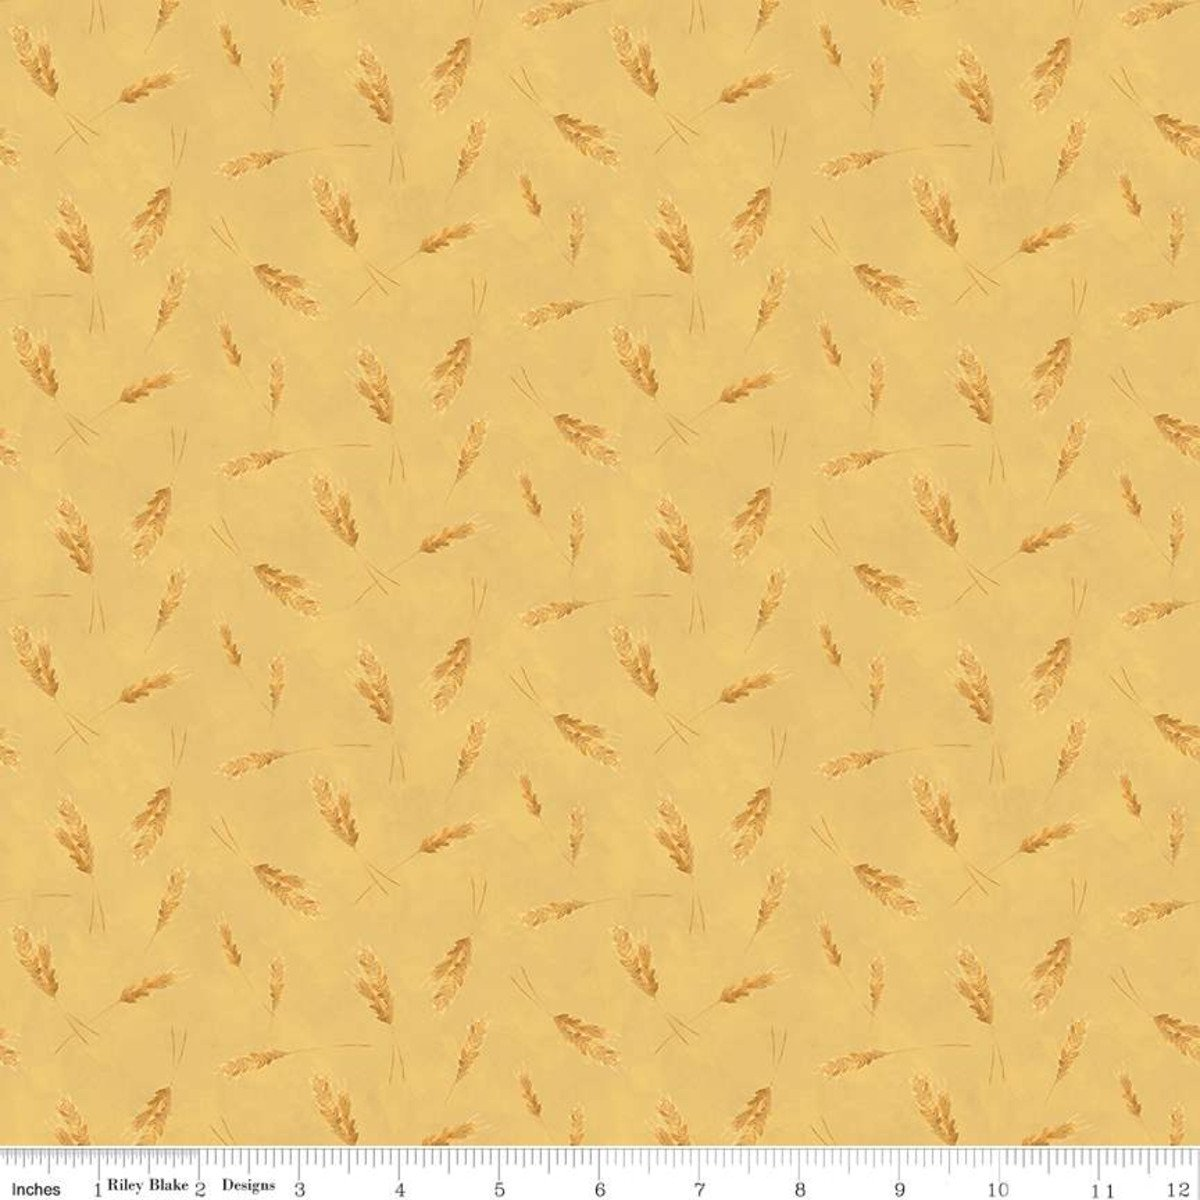 Homestead Life by Riley Blake Designs C9453 GOLD